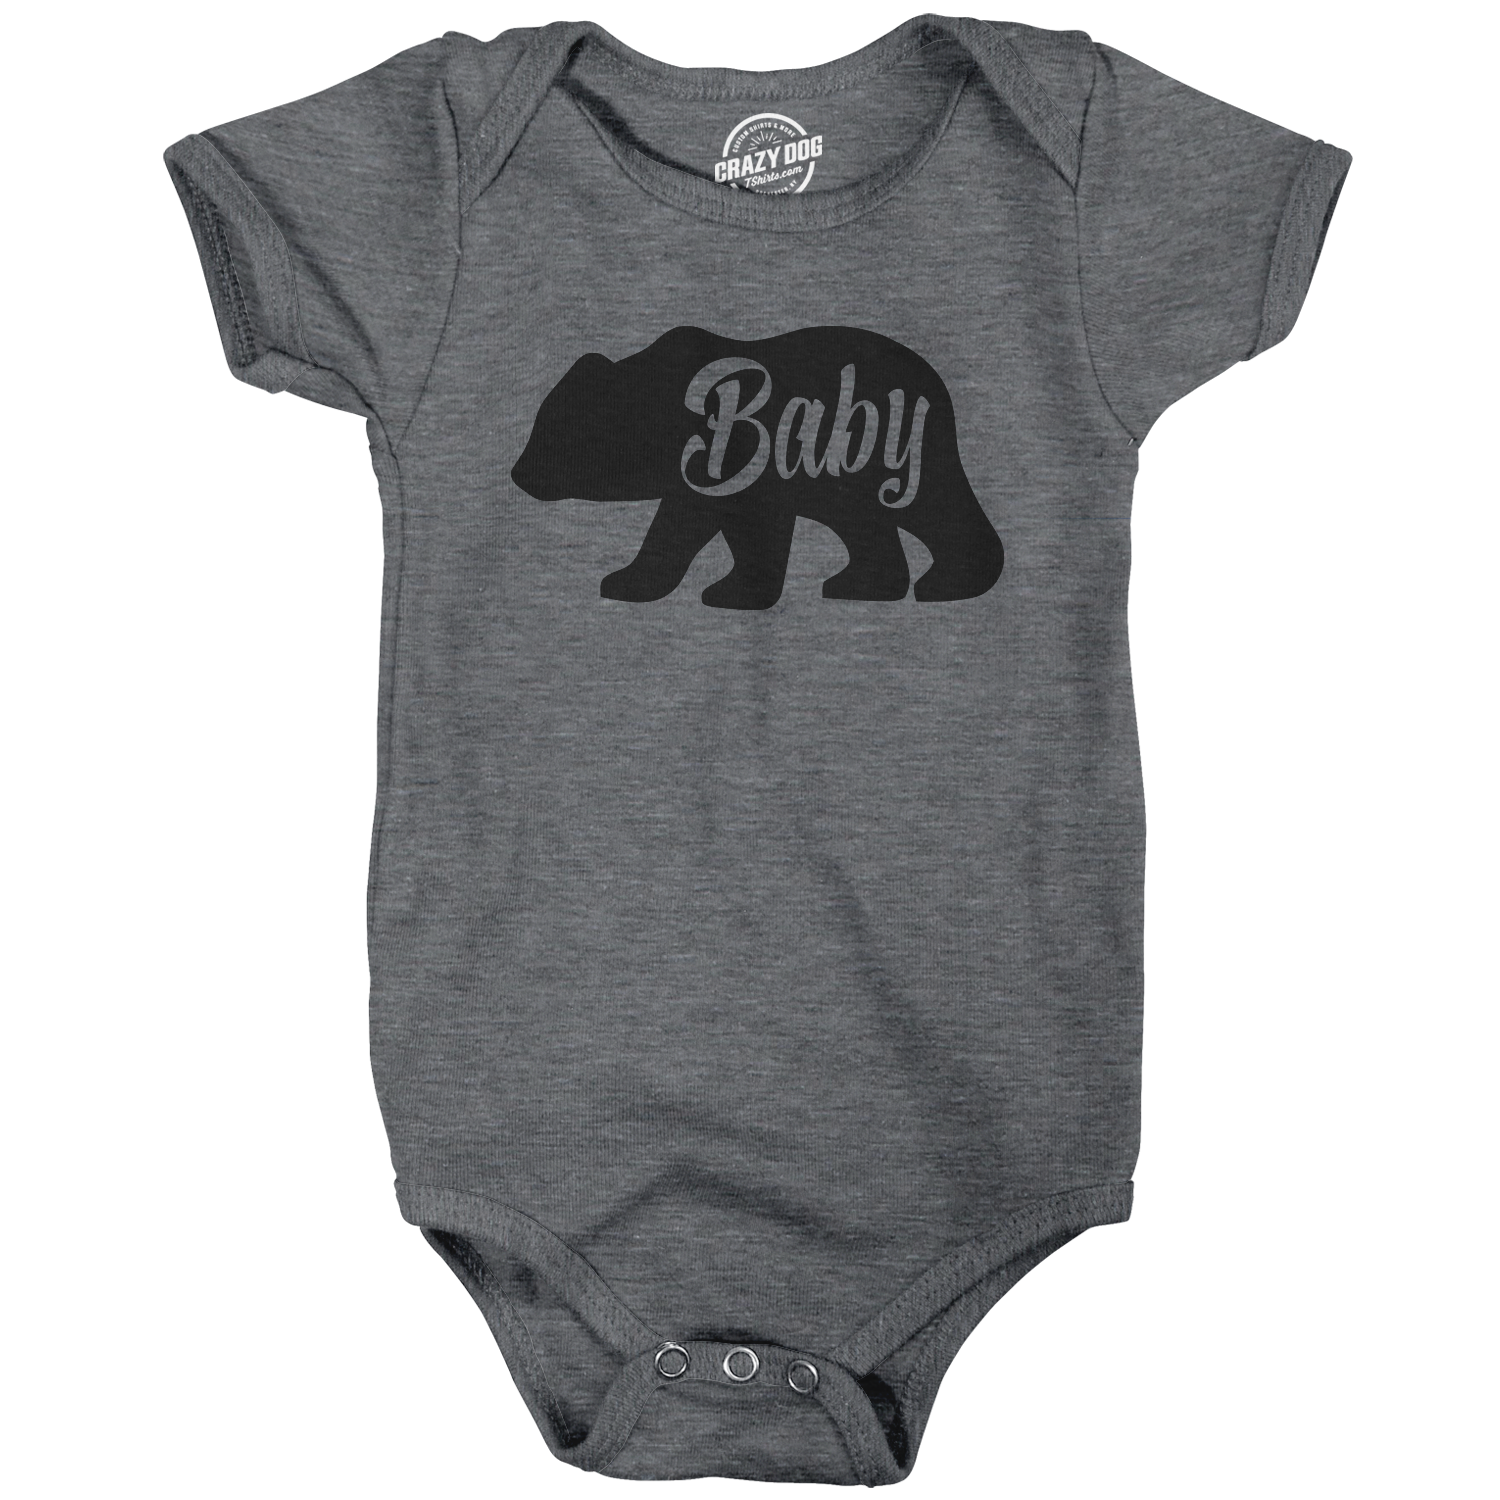 Crazy Dog TShirts - Baby Bear Funny Infant Shirts Cute Newborn Creeper for Family Bodysuit